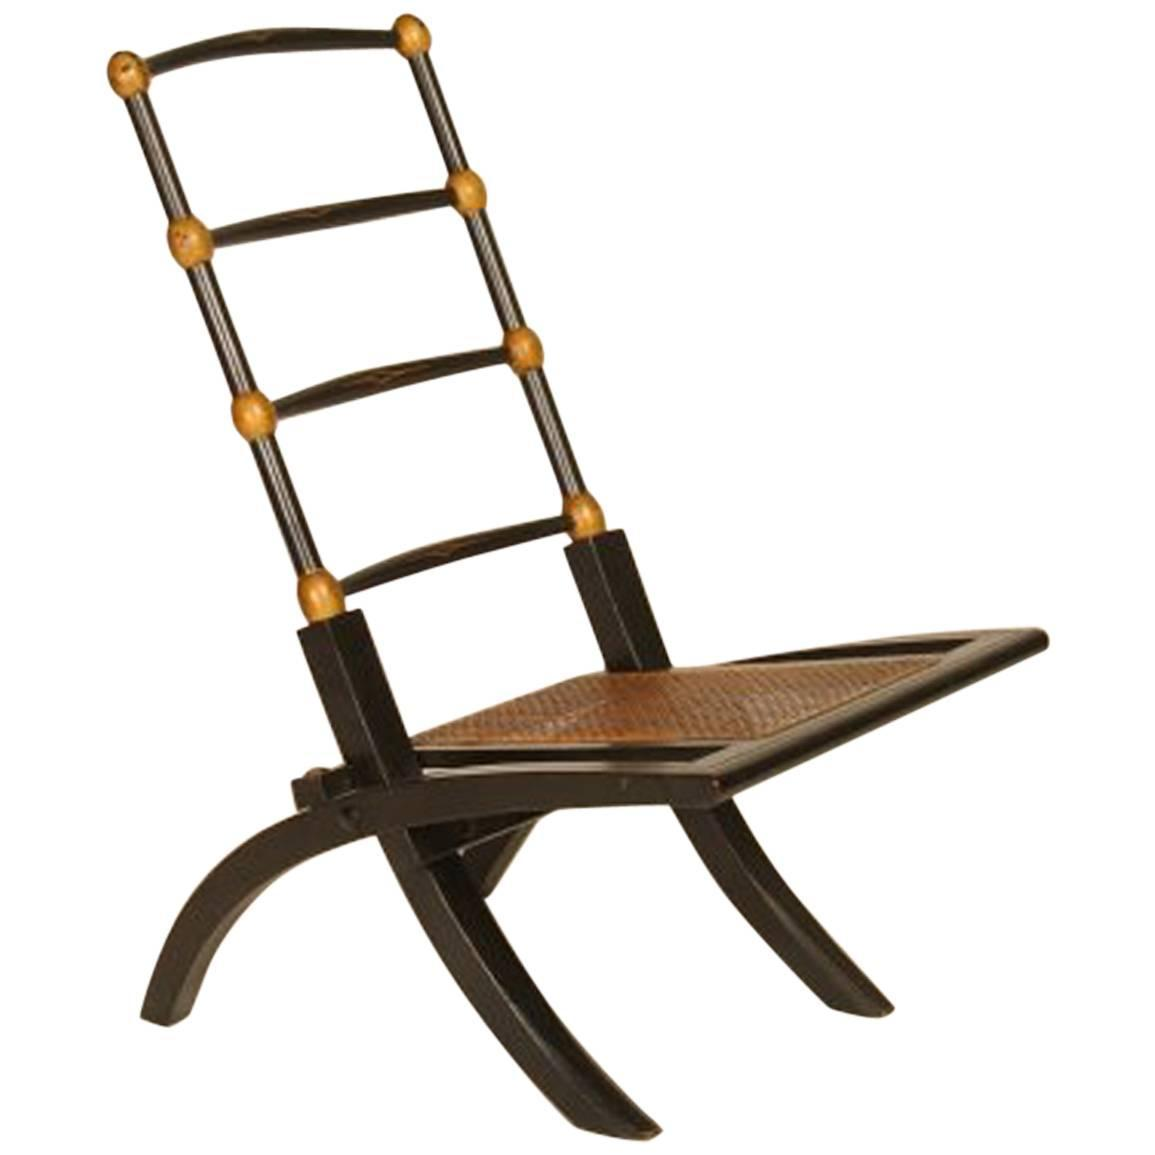 Ebonized Folding Chair with Cane Seat Attributed to E W Godwin For Sale at 1